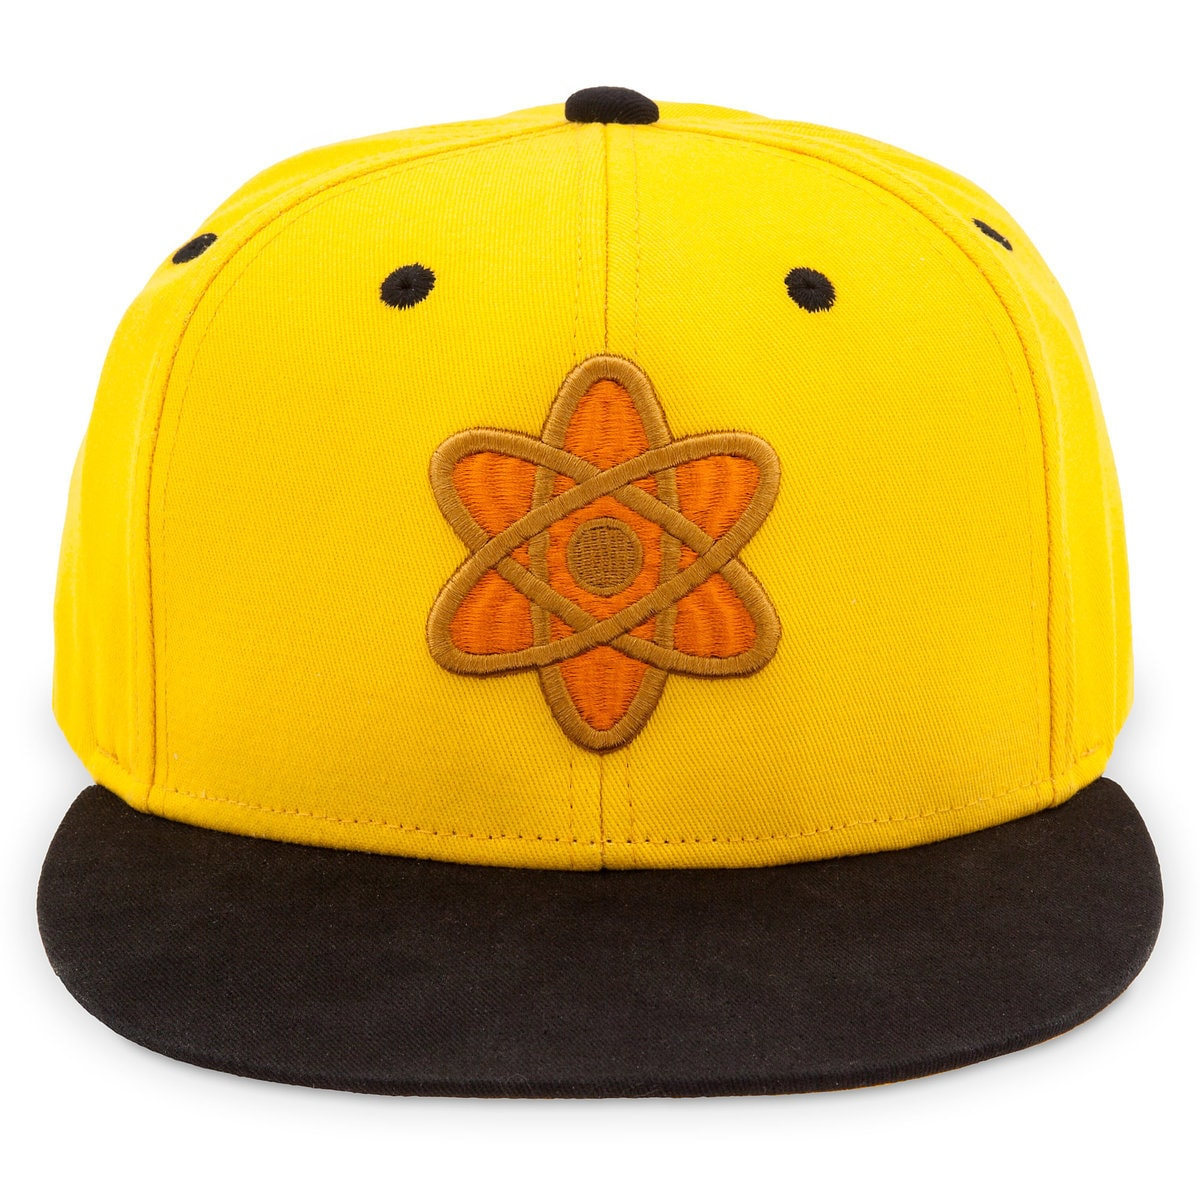 15e58a50c60 Product Image of Goofy Powerline Baseball Cap for Adults by Cakeworthy   1